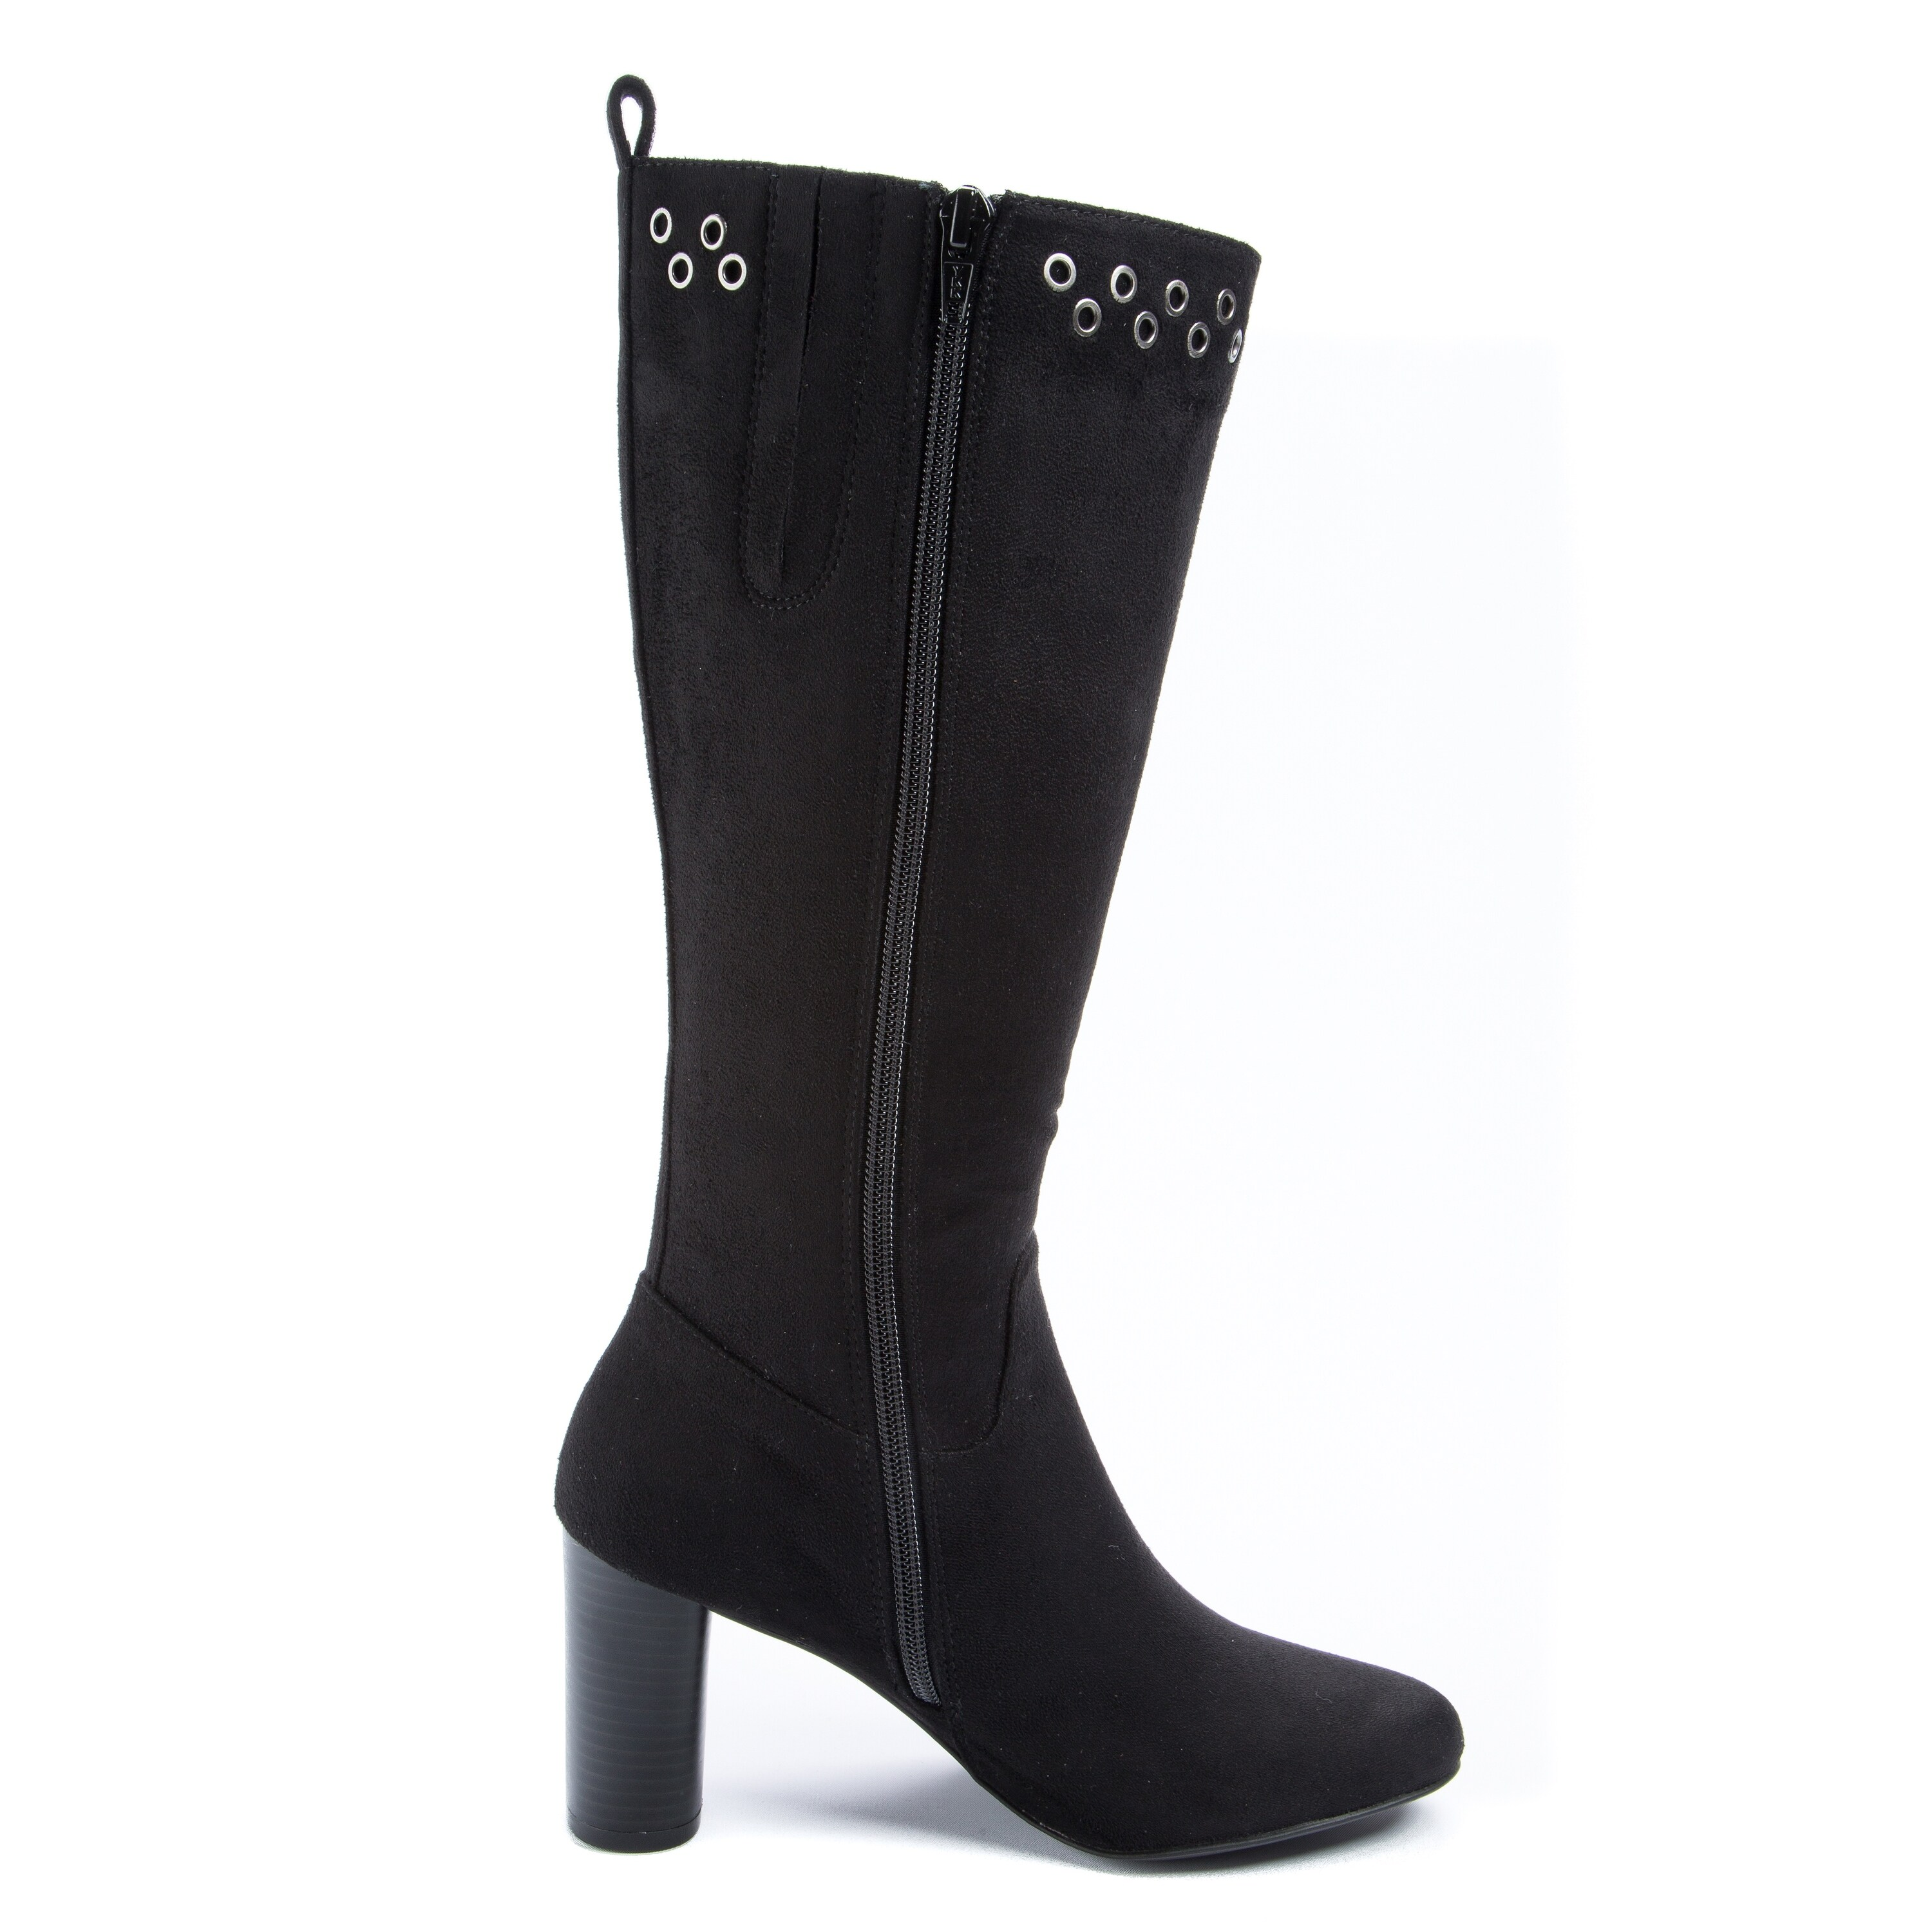 Andrew Geller Jean Women's Boots Black - Free Shipping On Orders Over $45 -  Overstock.com - 27044528